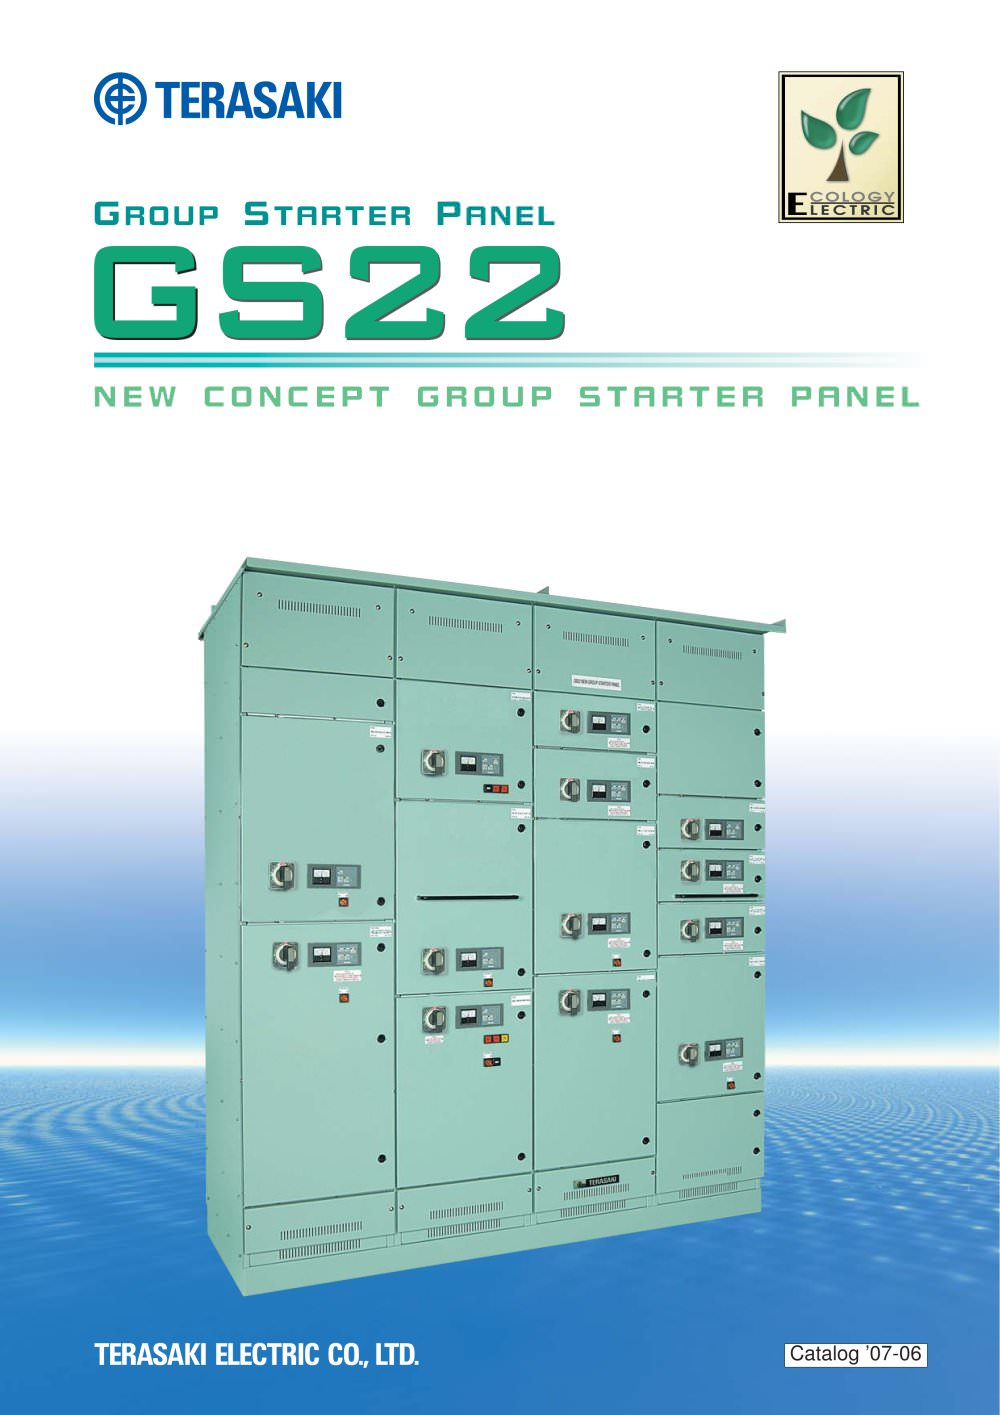 Group Starter Panel Model Gs22 Terasaki Electric Circuit Breaker Electrical 1 11 Pages